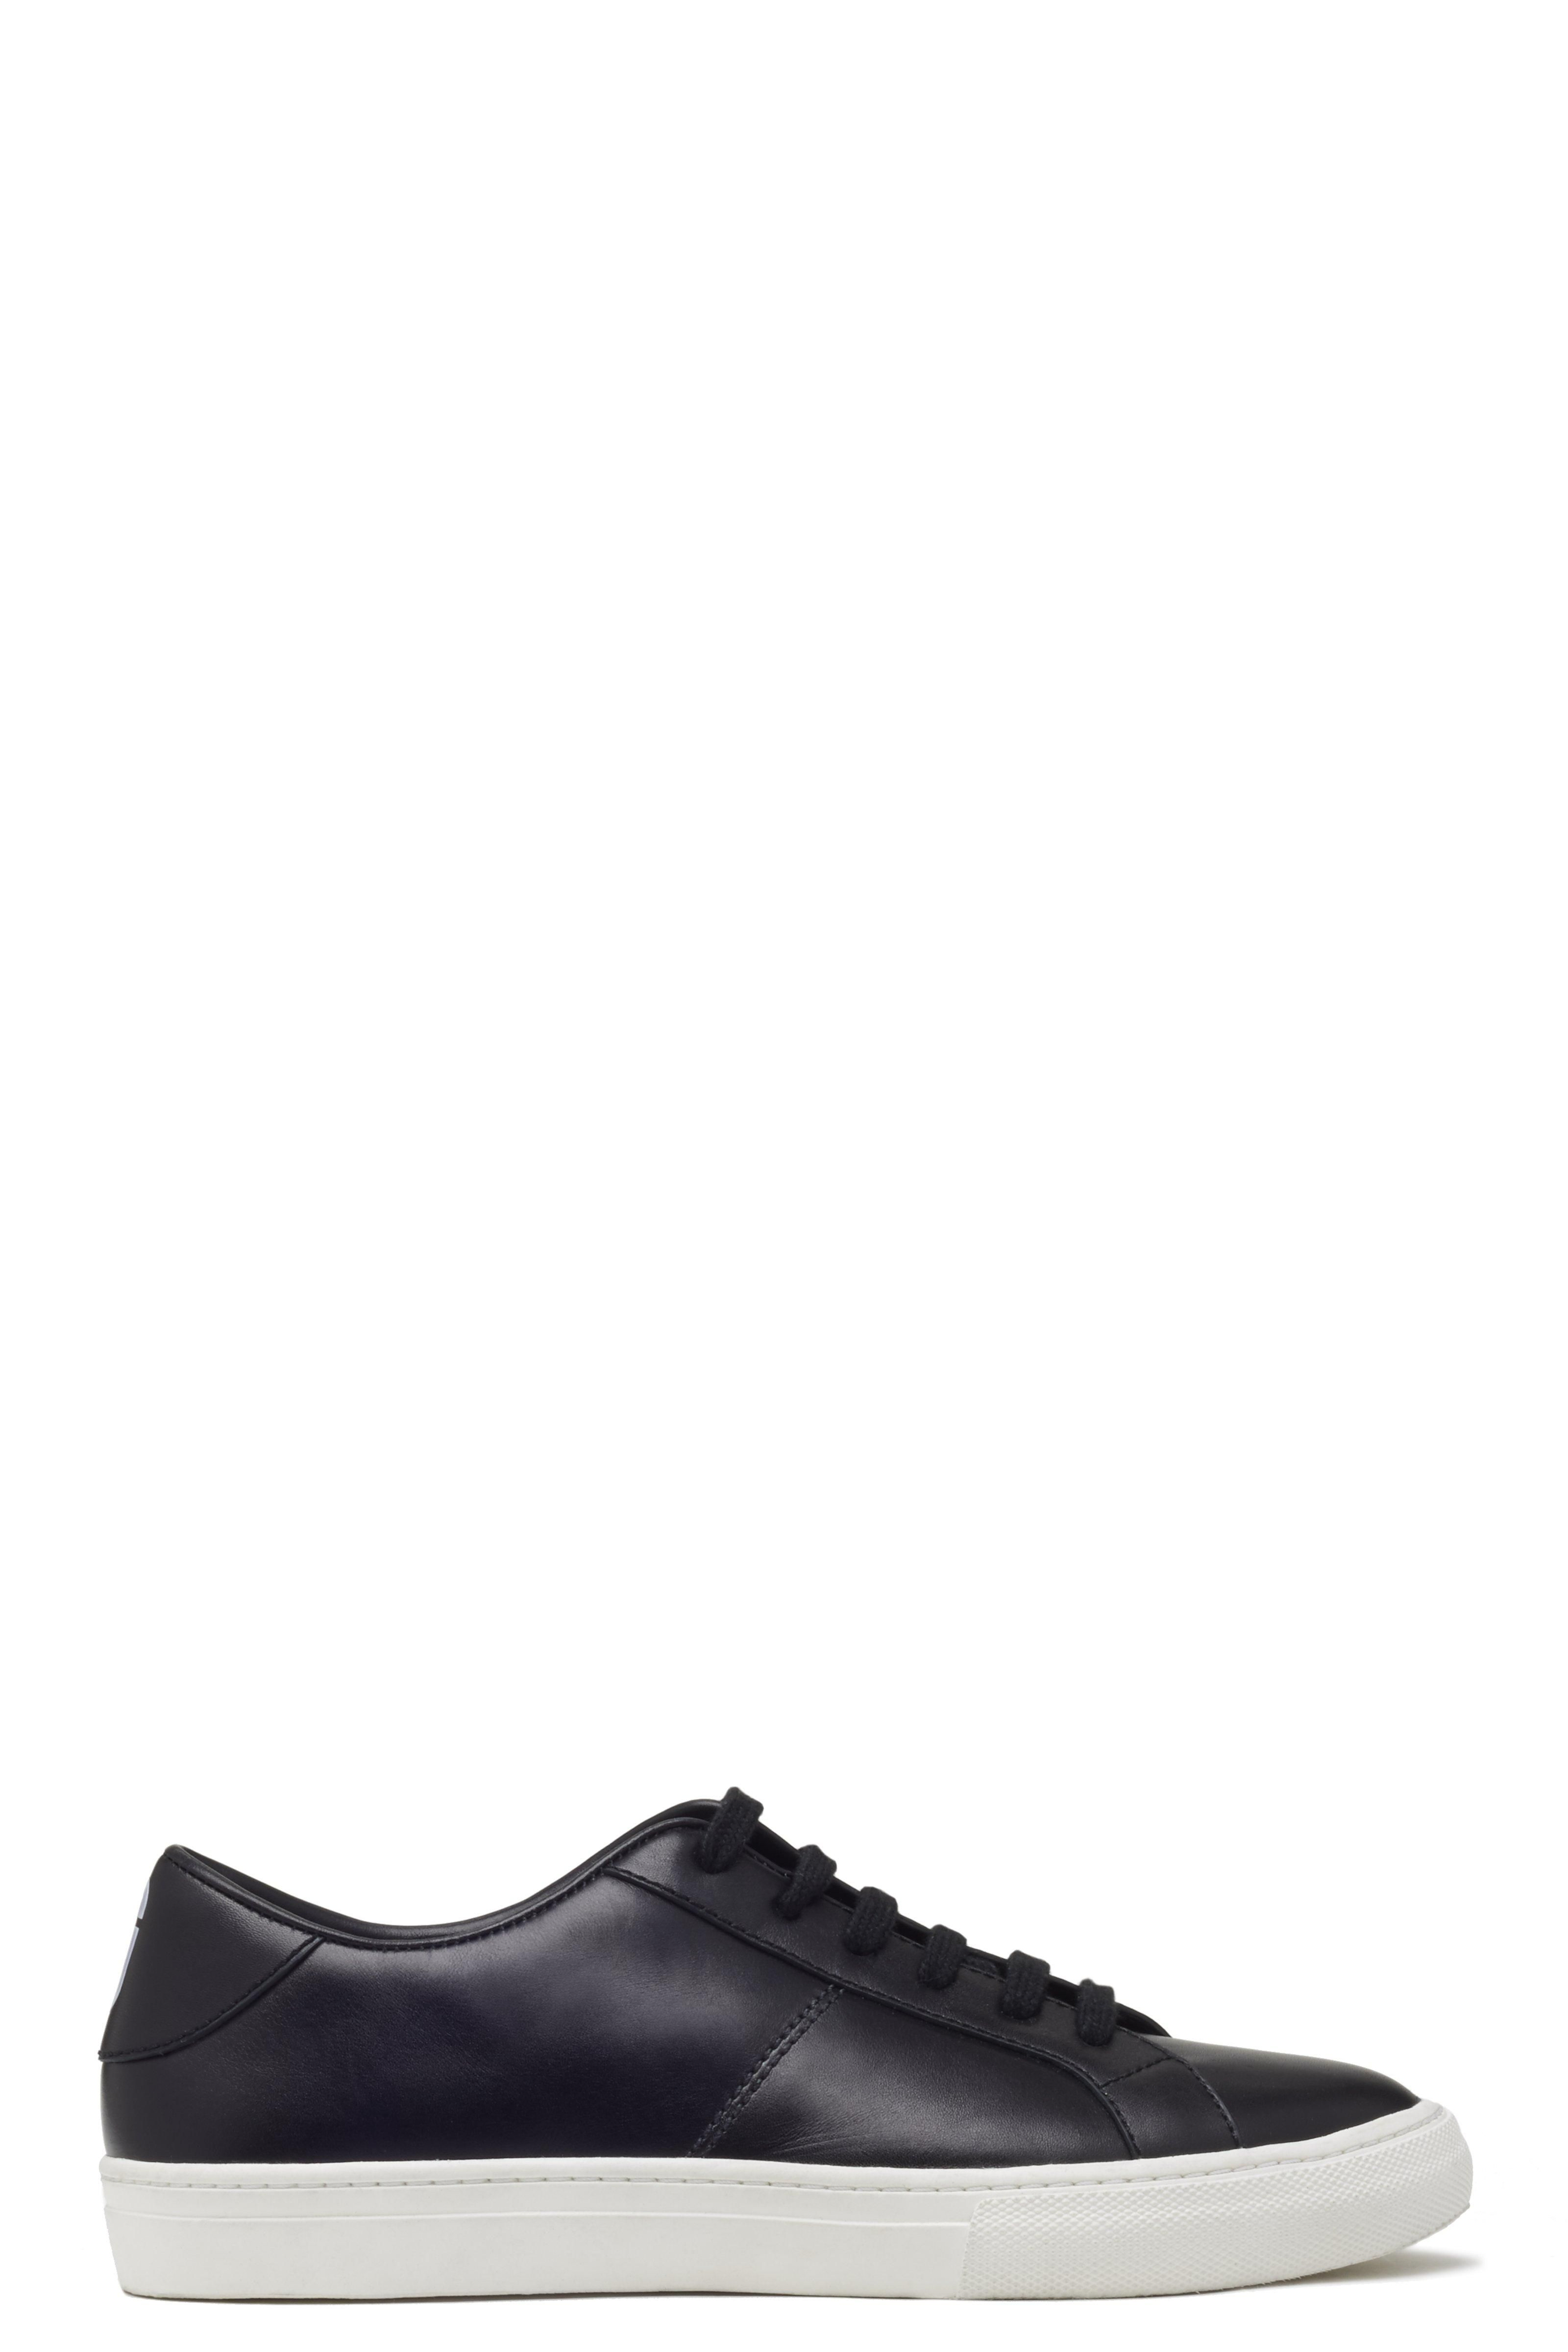 Marc Jacobs Empire Top Sneakermarcjacobsshoes Low wPk80On